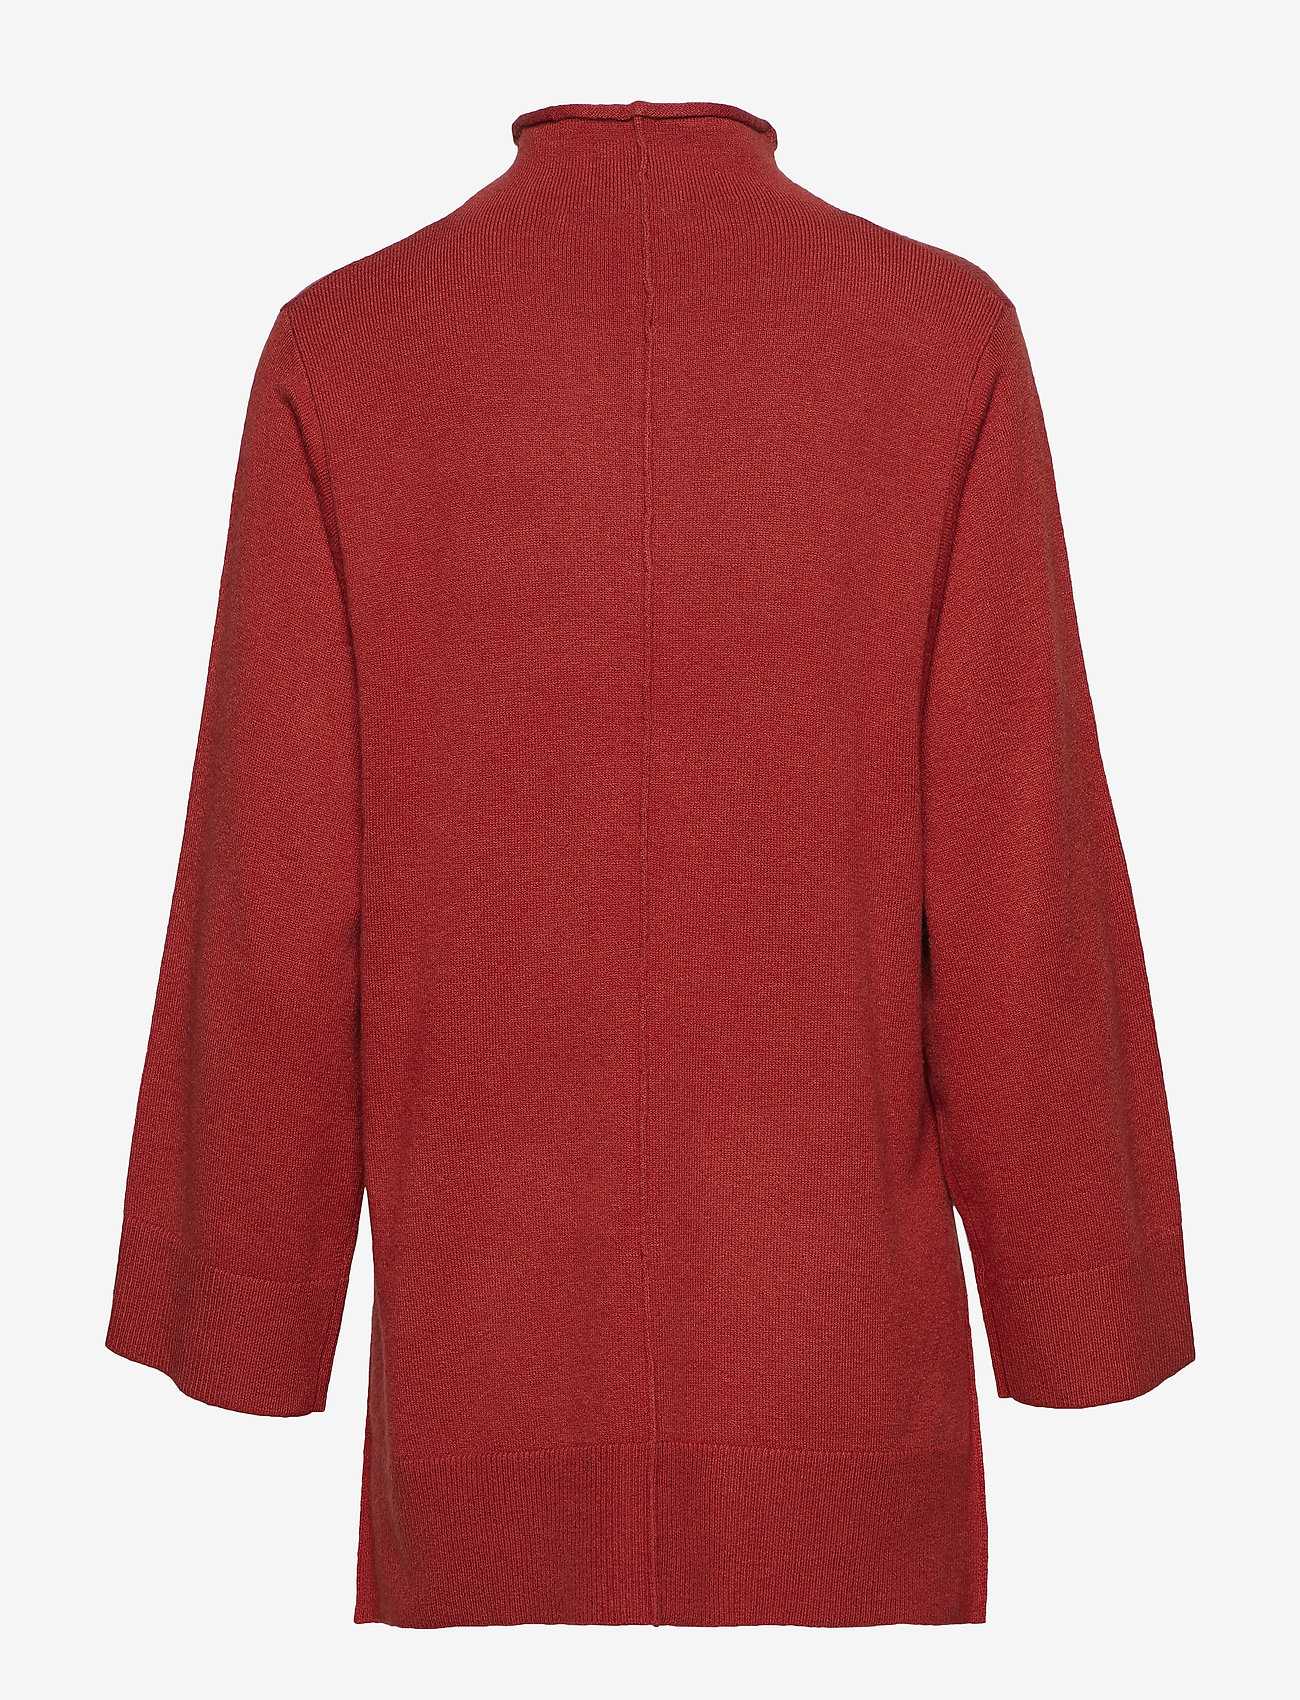 Ebba Vhari Mock Neck Jumper (Firewood) (379.60 kr) - French Connection